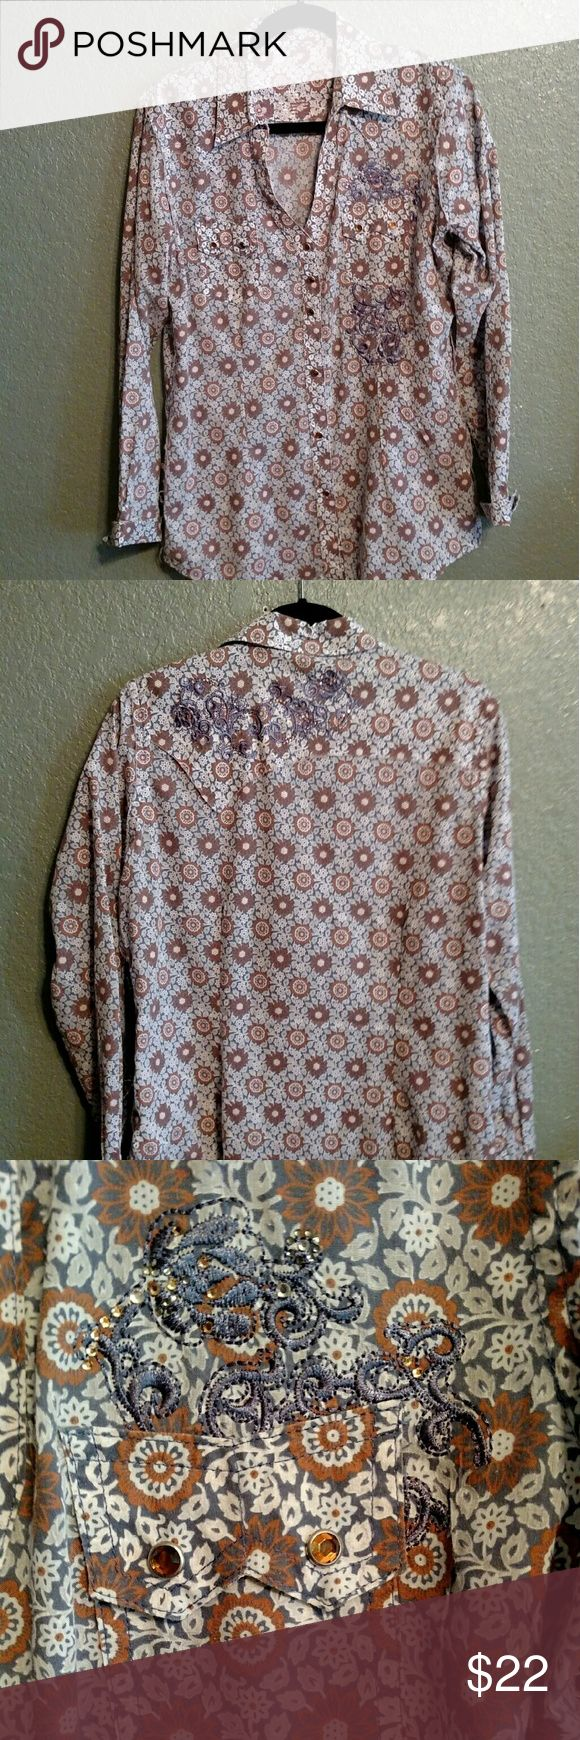 WRANGLER COWGIRL SHIRT This Wrangler Rock 47 shirt is adorable to wear with jeans and boots. Great colors, not too much bling. Excellent condition from pet and smoke free home. Wrangler Tops Button Down Shirts